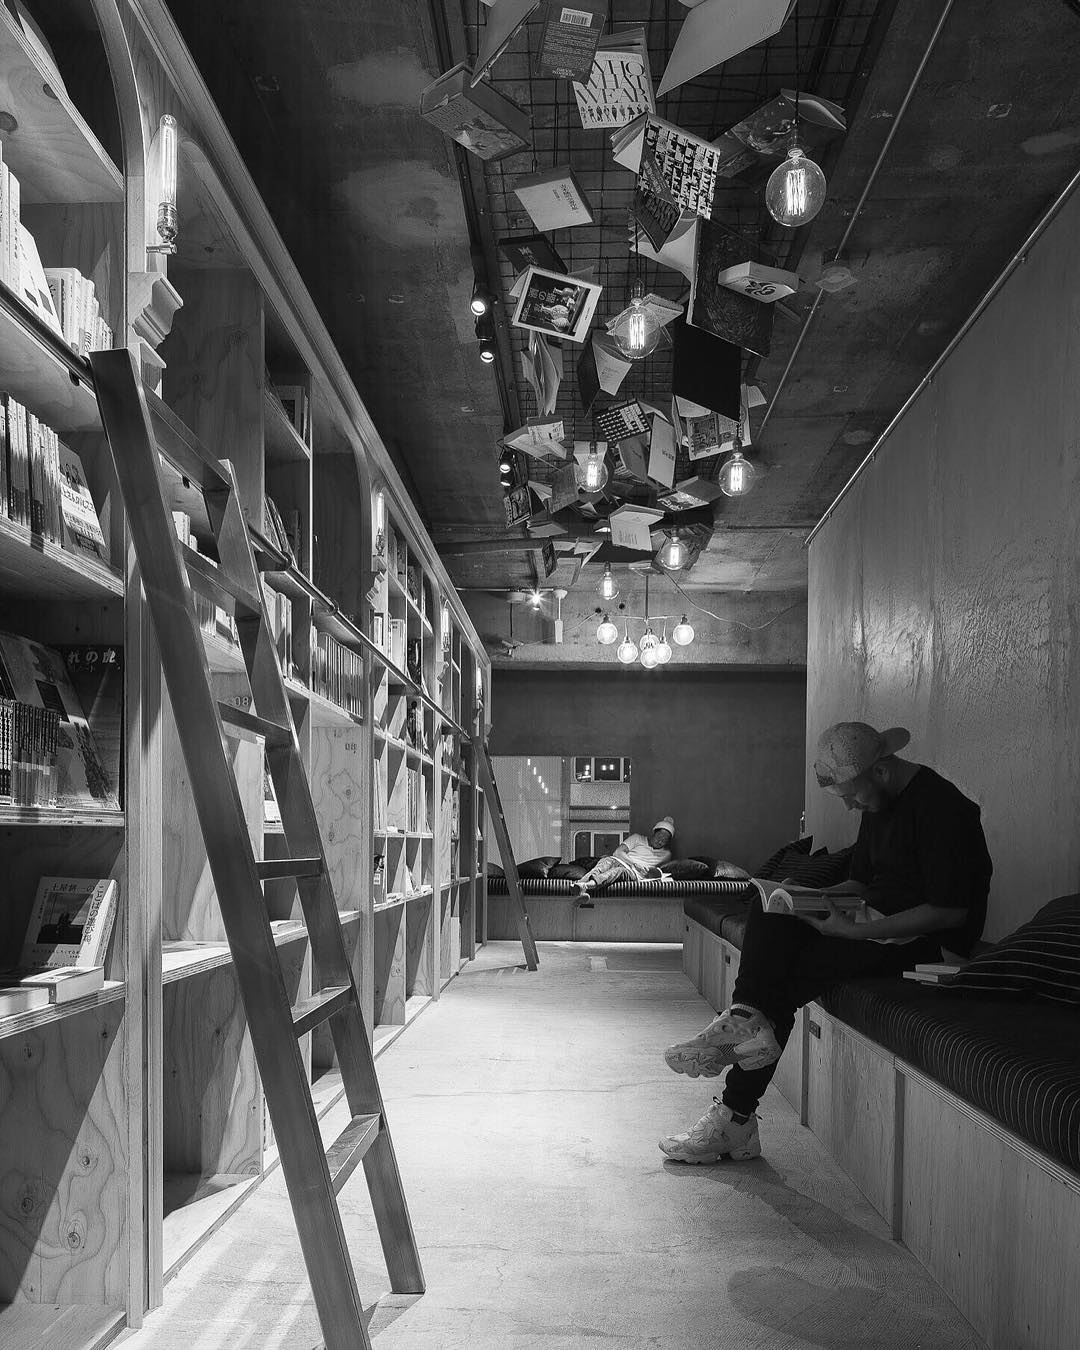 Eventually, there will be over 3000 books - Bookstore-Themed Tokyo Hotel Has 1,700 Books And Sleeping Shelves Next To Them